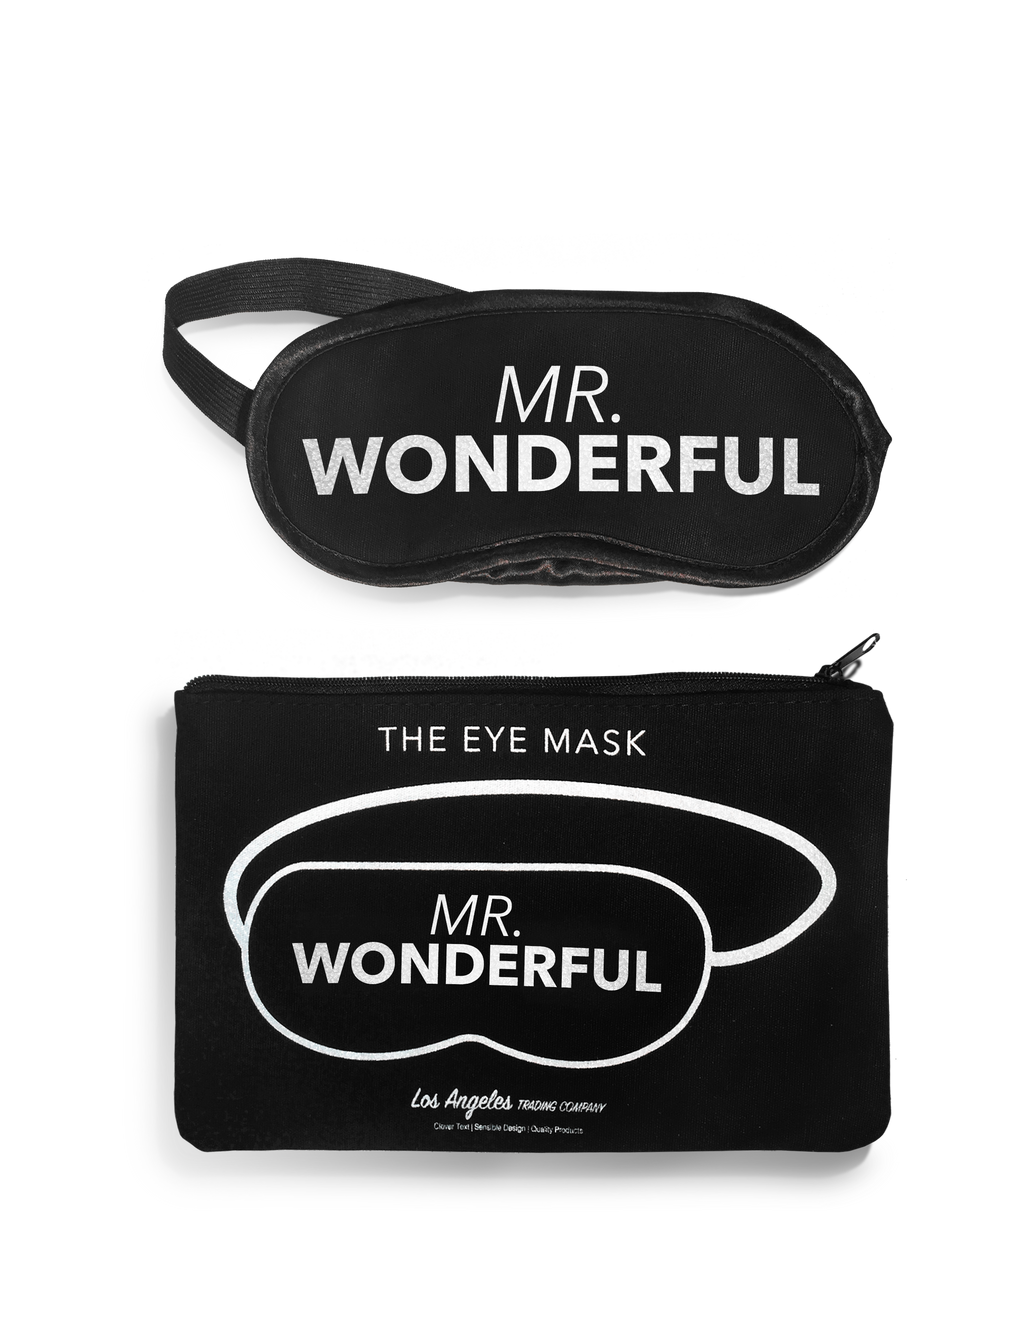 EYE MASK - Mr. Wonderful